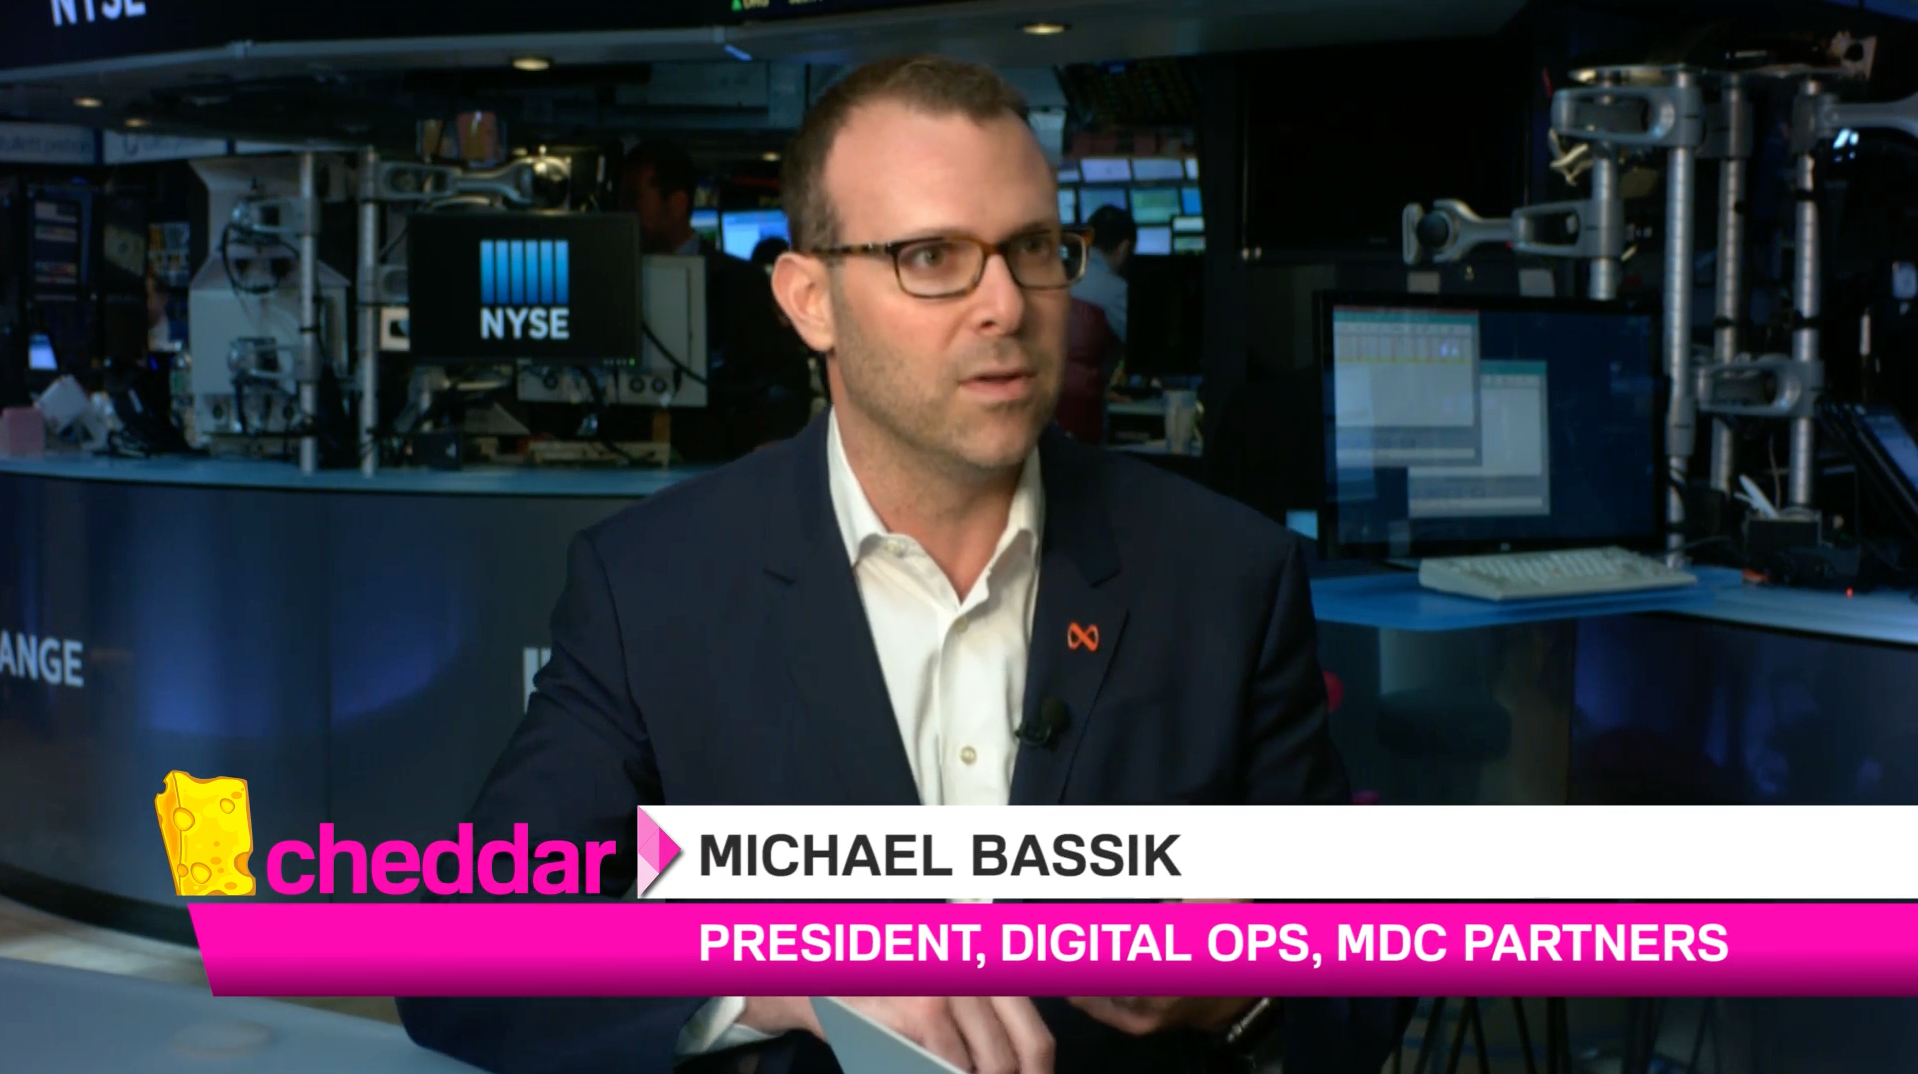 BASSIK: AGENCIES ARE MOVING TOWARDS DATA AND TRANSPARENCY TO BETTER SERVE CLIENTS